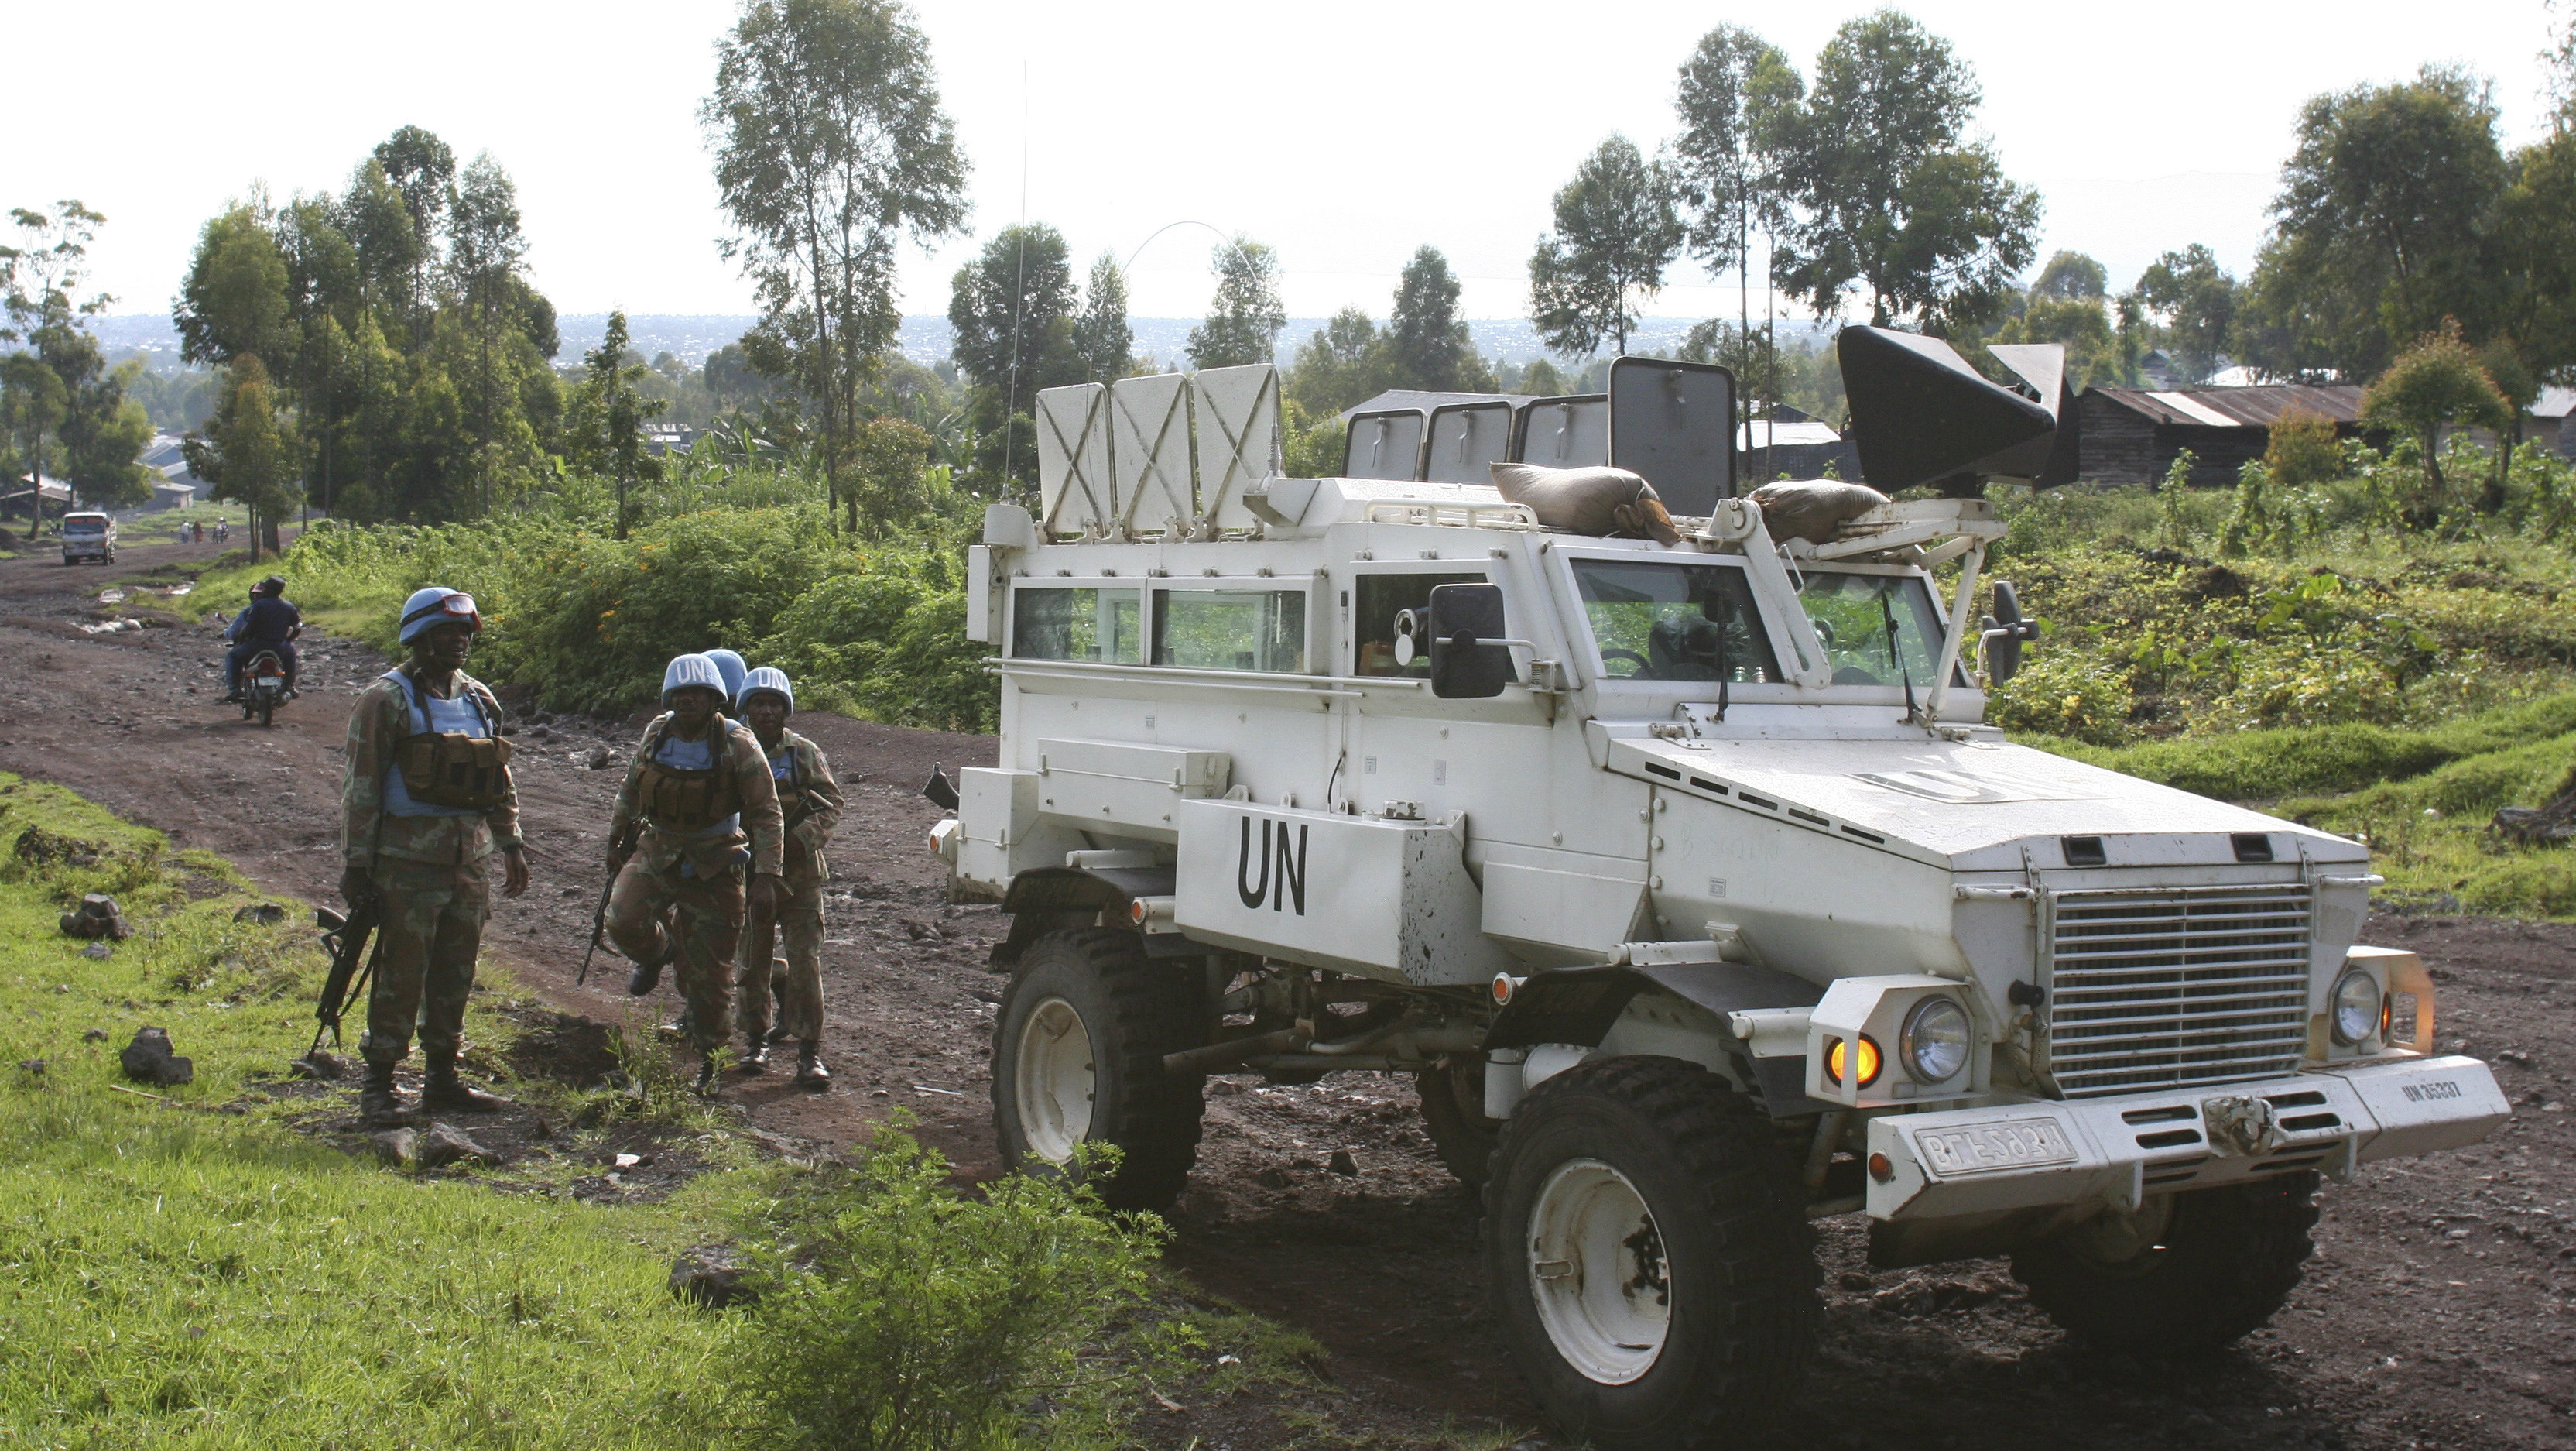 South African peacekeepers patrol the streets of Goma in eastern Democratic Republic of Congo, December 2, 2015. Christmas came early on Wednesday with hampers, gifts and praise from their political masters for hundreds of South African peacekeepers in Democratic Republic of Congo struggling to make an impact in the face of its chaotic and confusing politics.